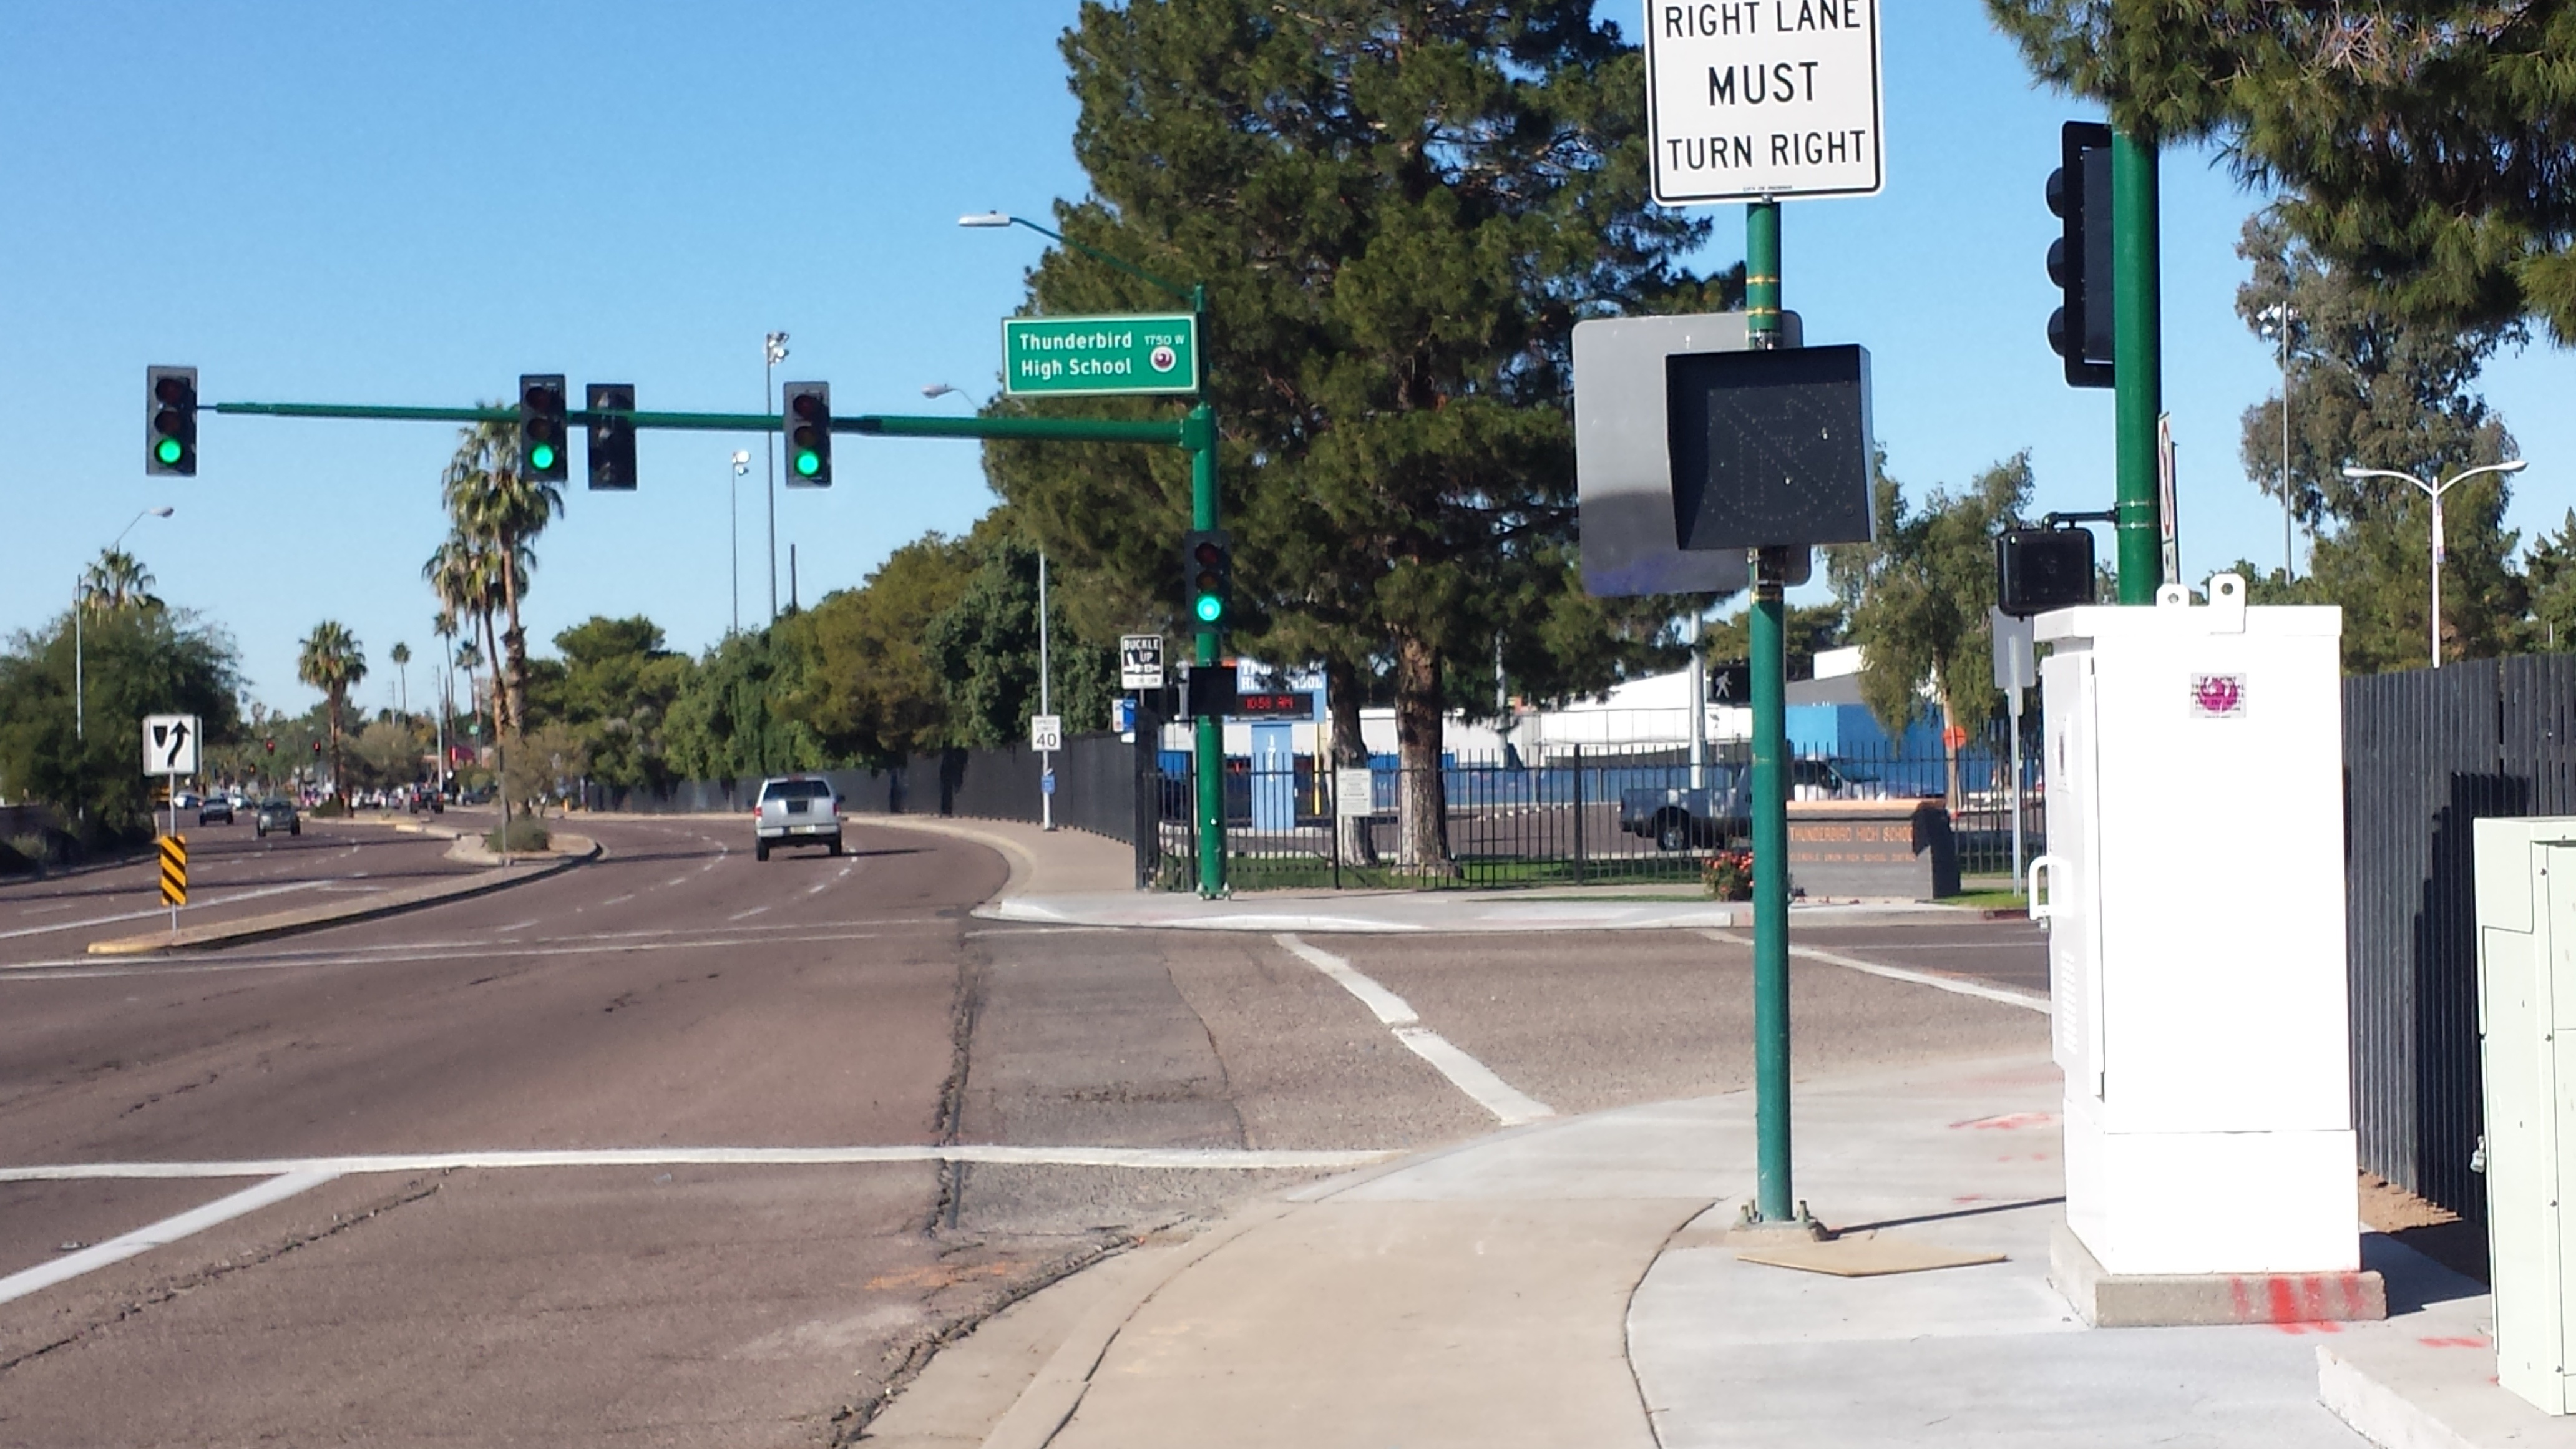 school entry mobility no right turn 3.jpg